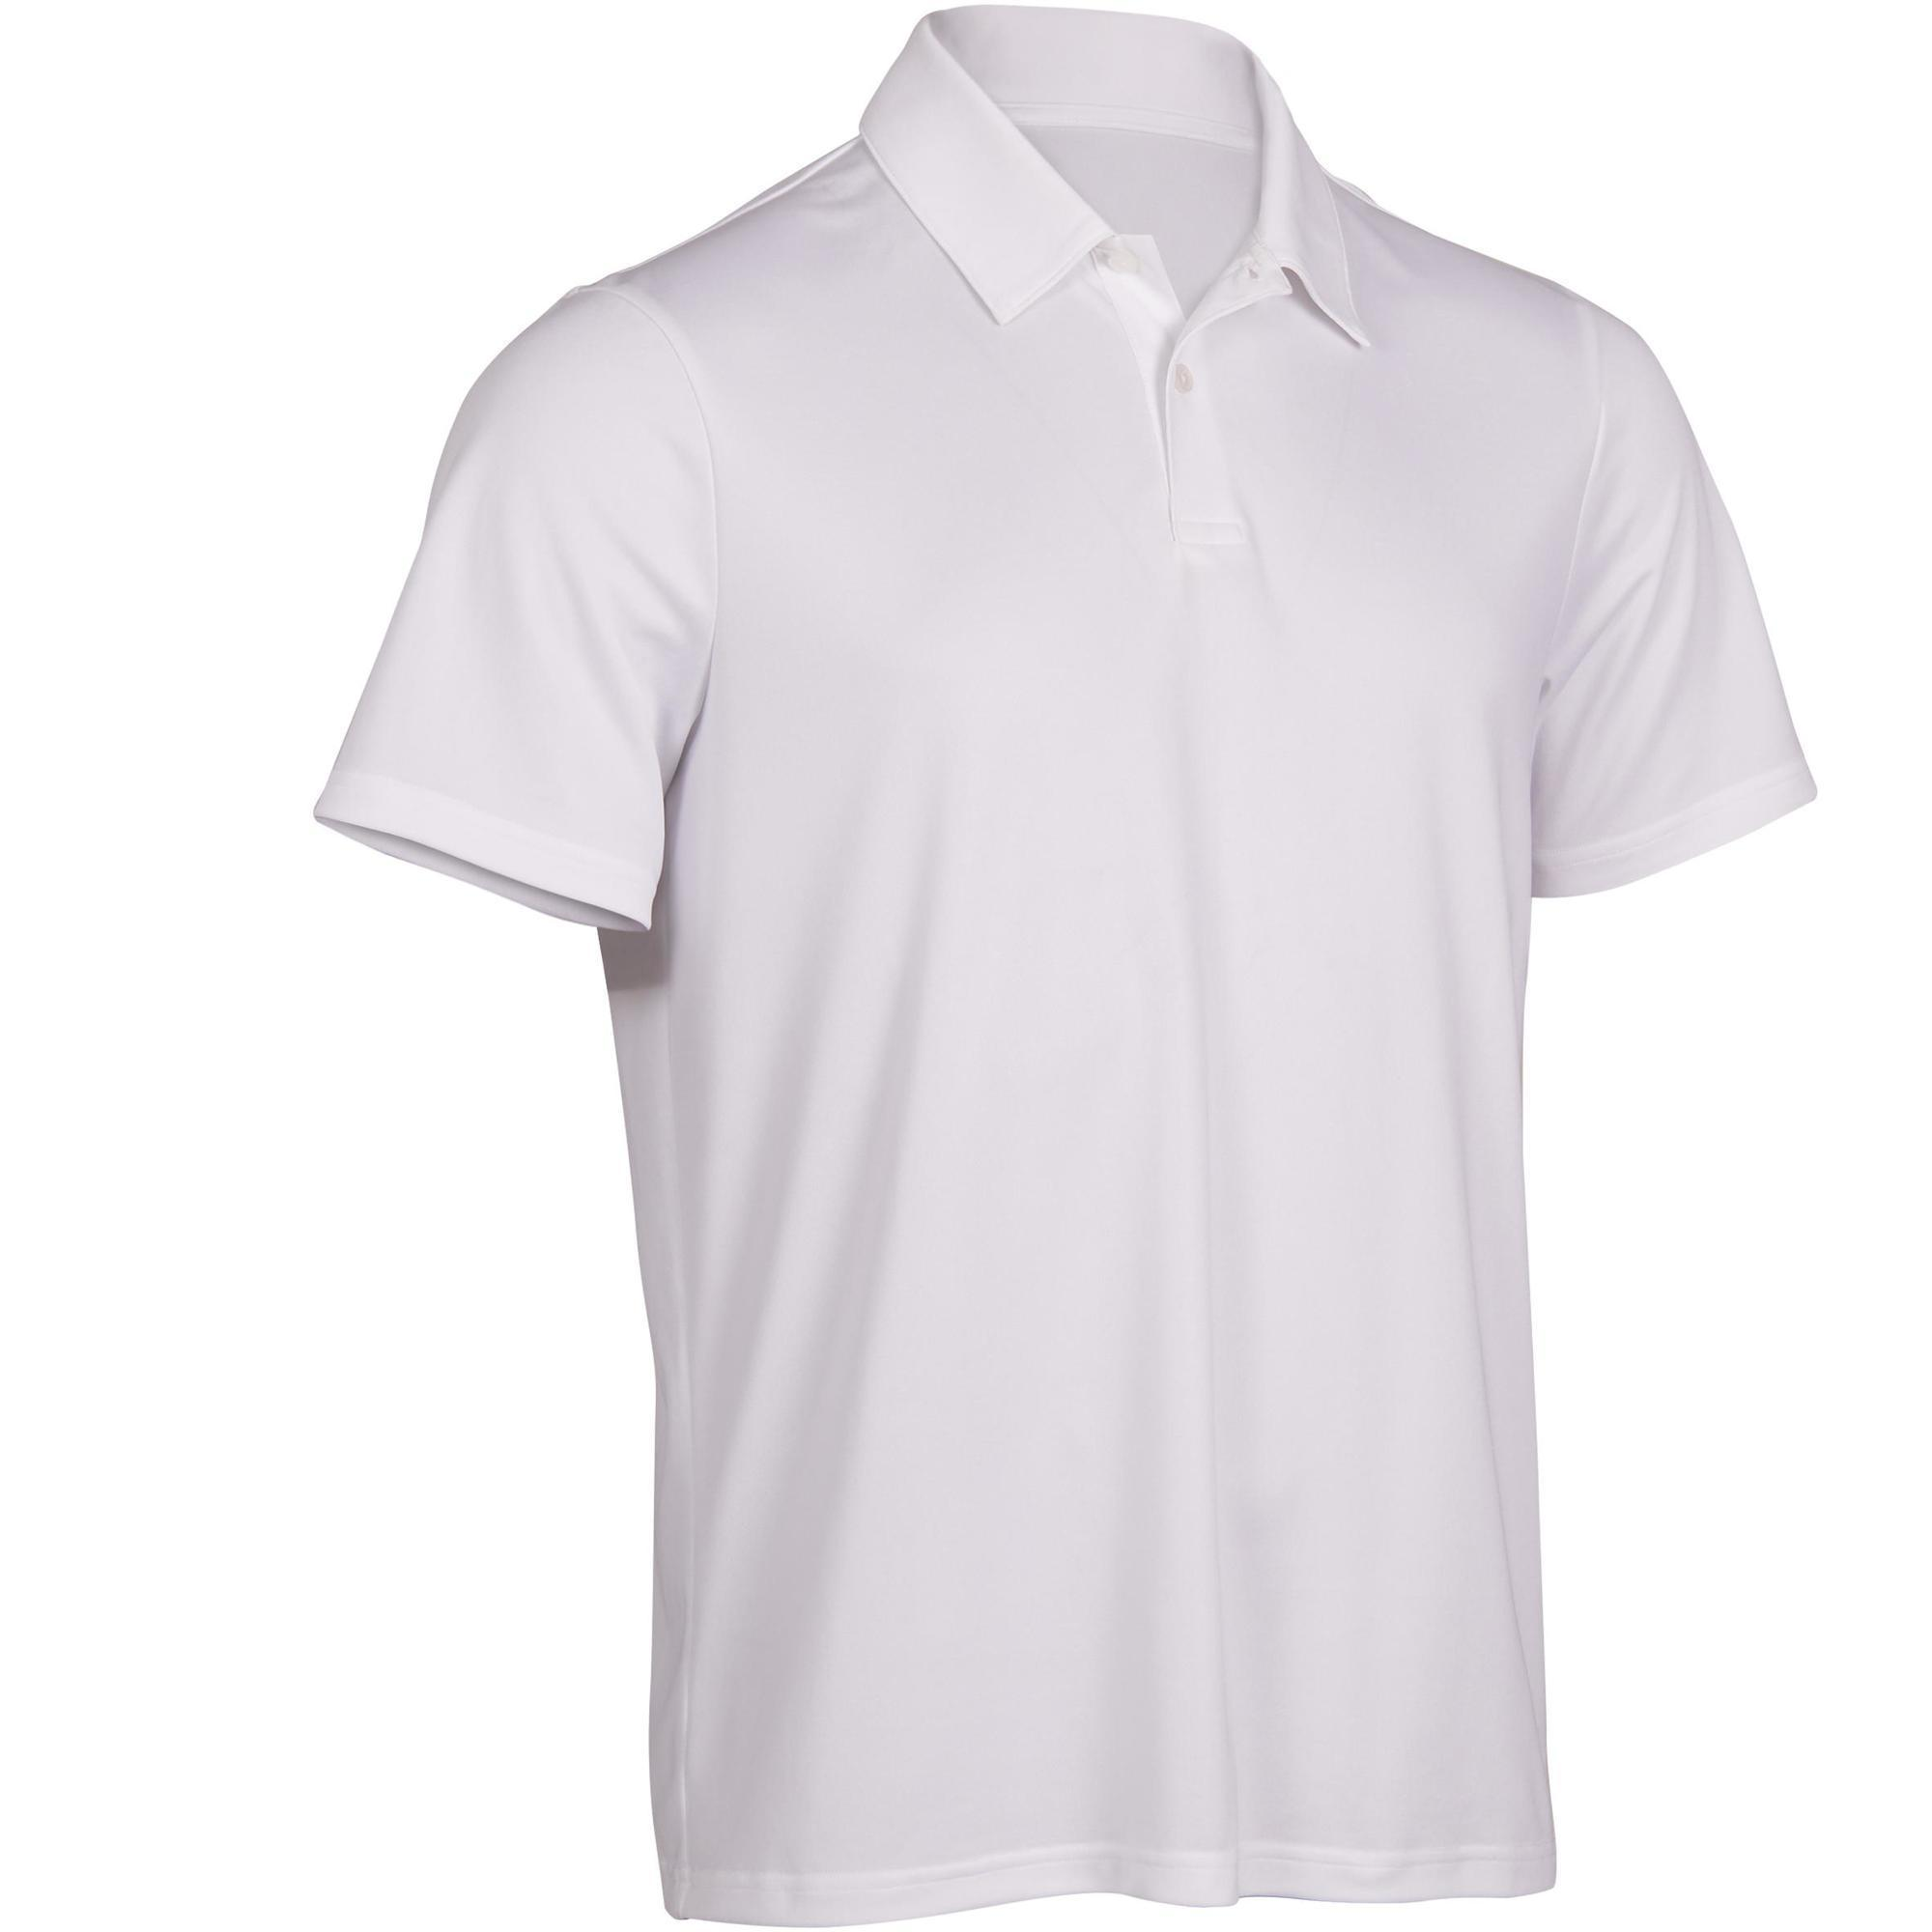 a few days away cheap prices new release T shirts / Polo shirts - Dry 100 Tennis Polo Shirt - White